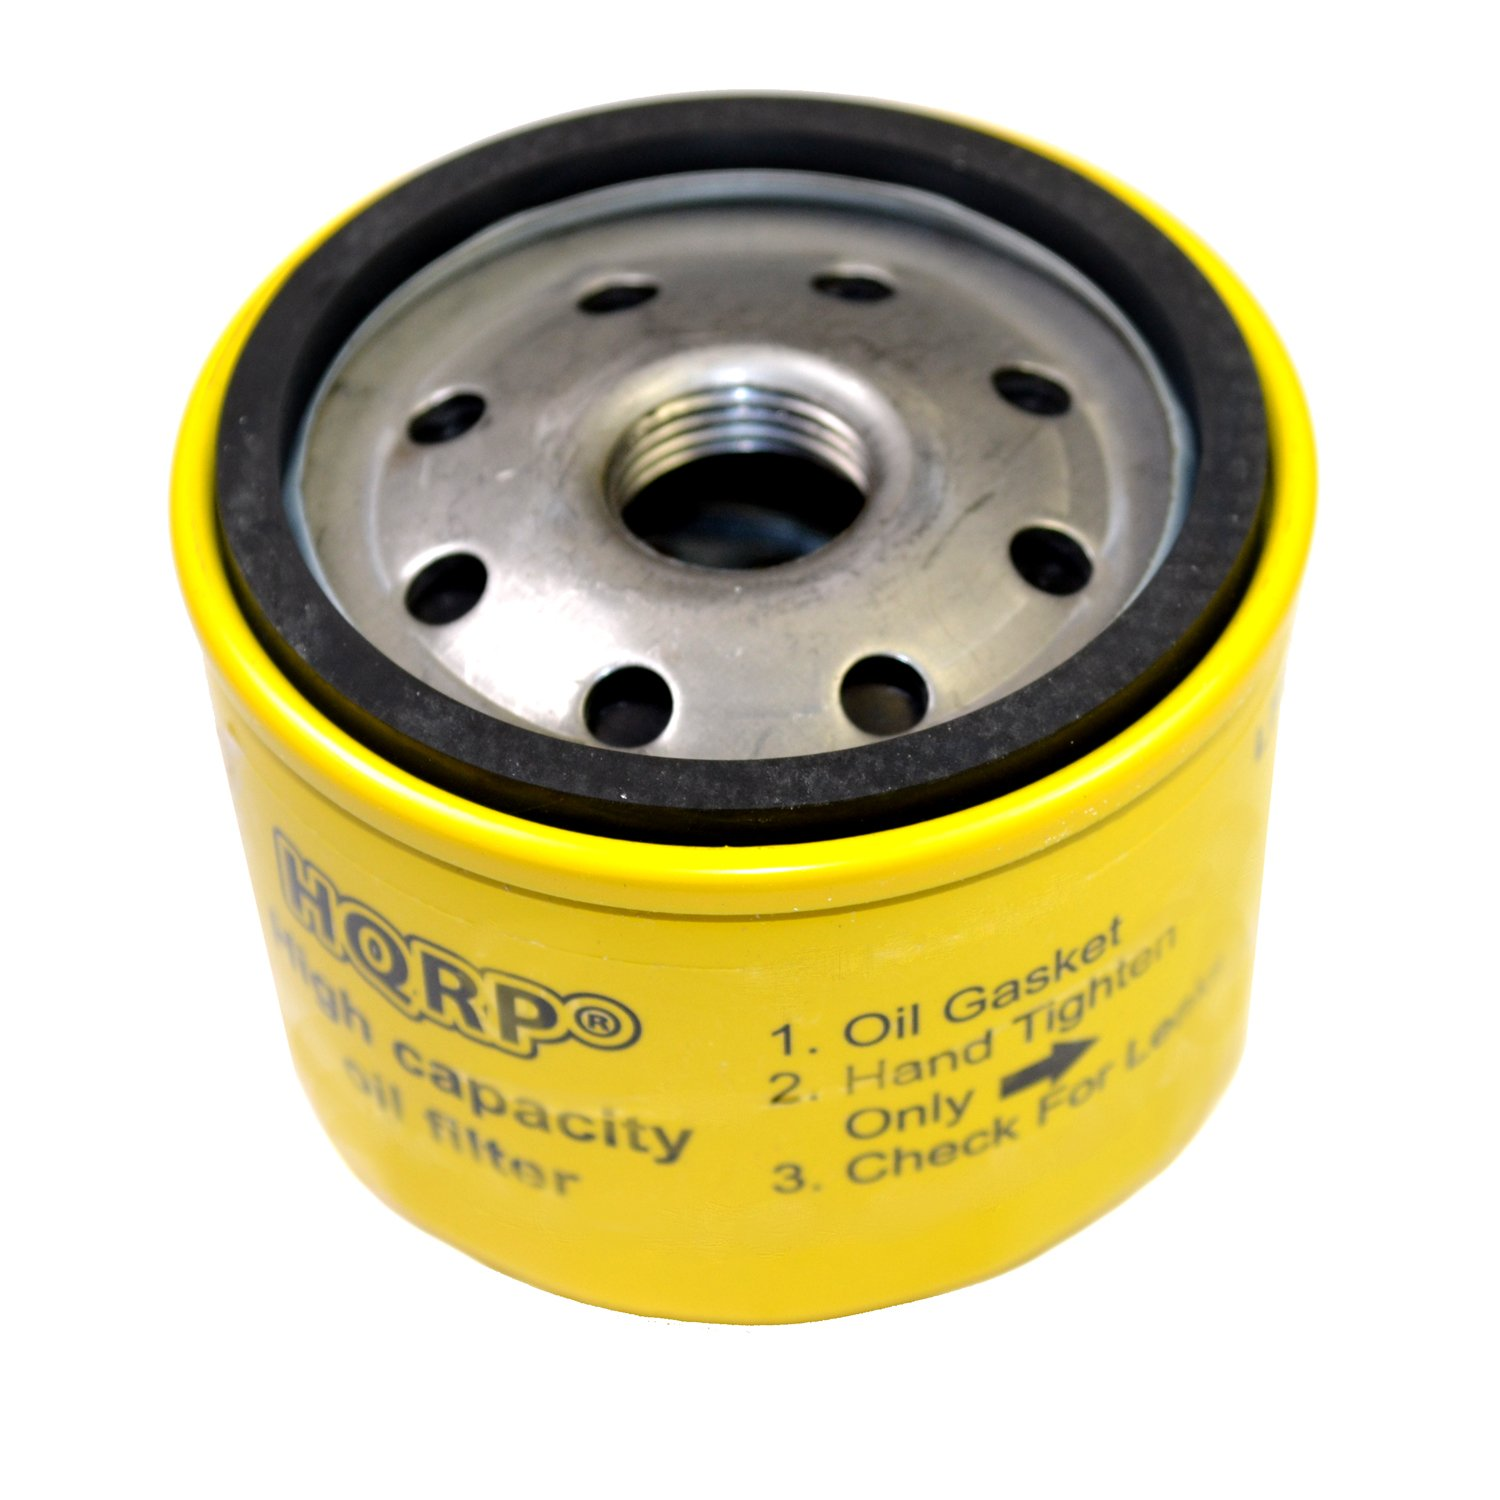 HQRP Oil Filter for Briggs & Stratton Professional Series V-Twin, Extended Life Series V-Twin Engines 23-30 gross HP, 696854 Replacement + HQRP Coaster